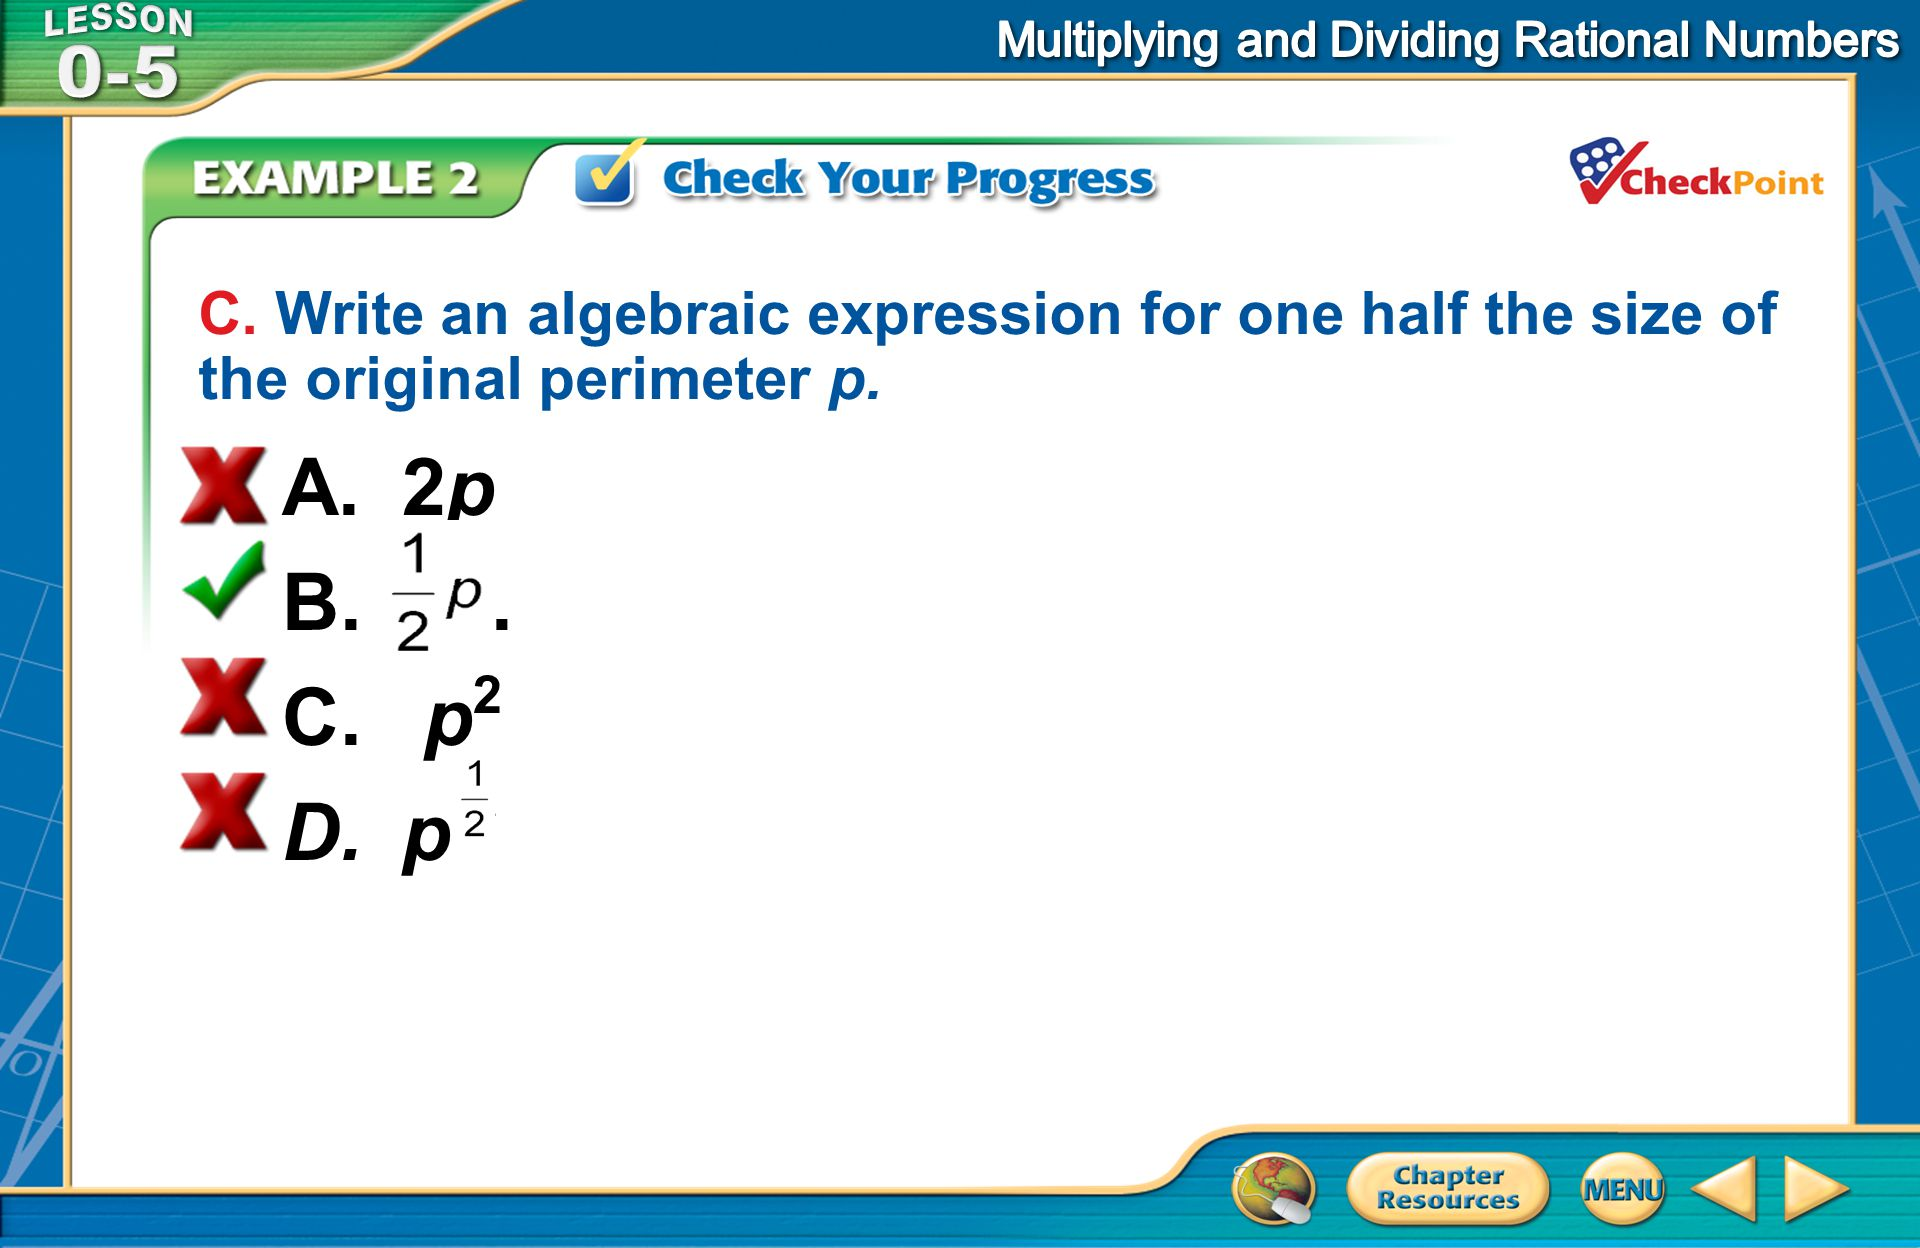 C. Write an algebraic expression for one half the size of the original perimeter p.